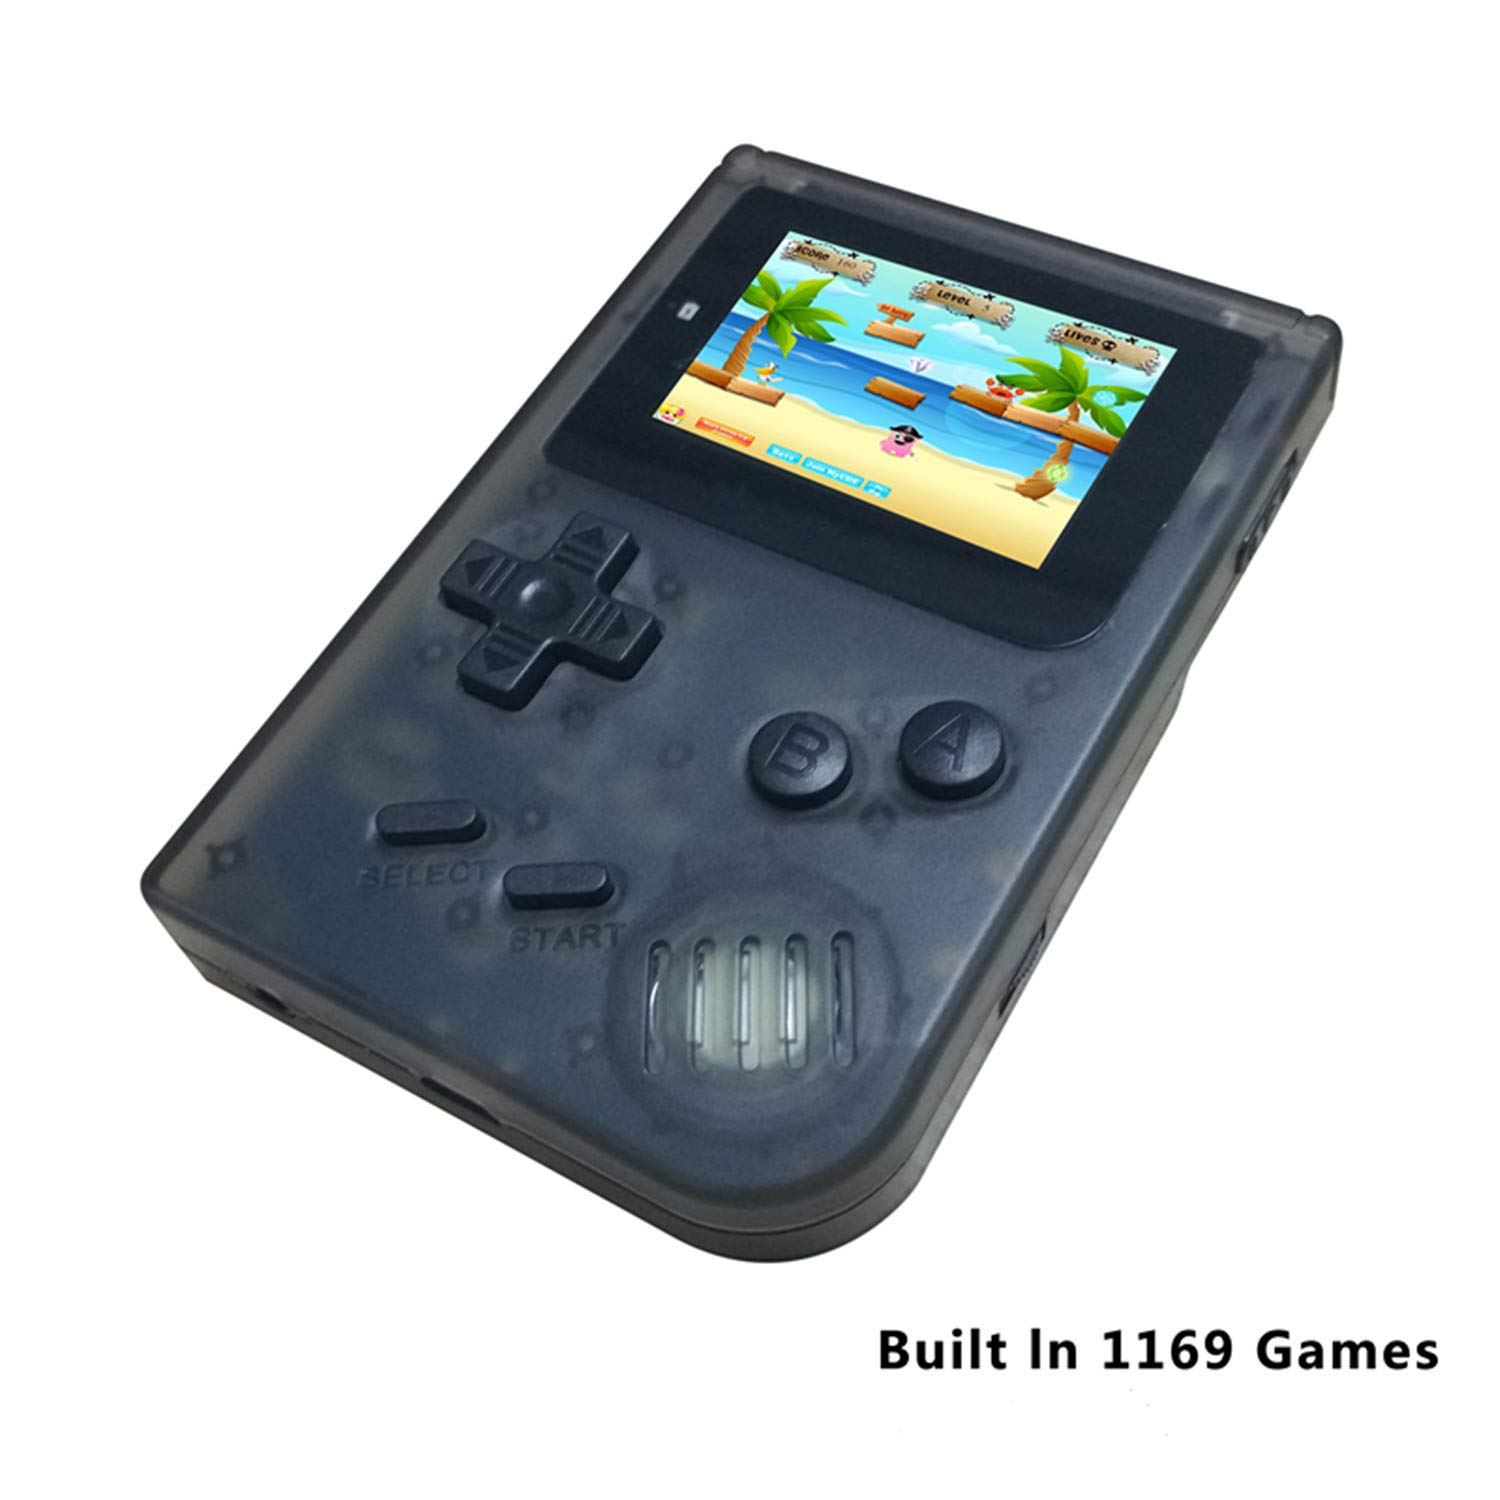 BAORUITENG Handheld Games Consoles , Retro TV Game Console Video Game Console Player 2.0 Inch Game Console with 1169 GBA System Classic Games for Kids Gift (Black) by BAORUITENG (Image #1)